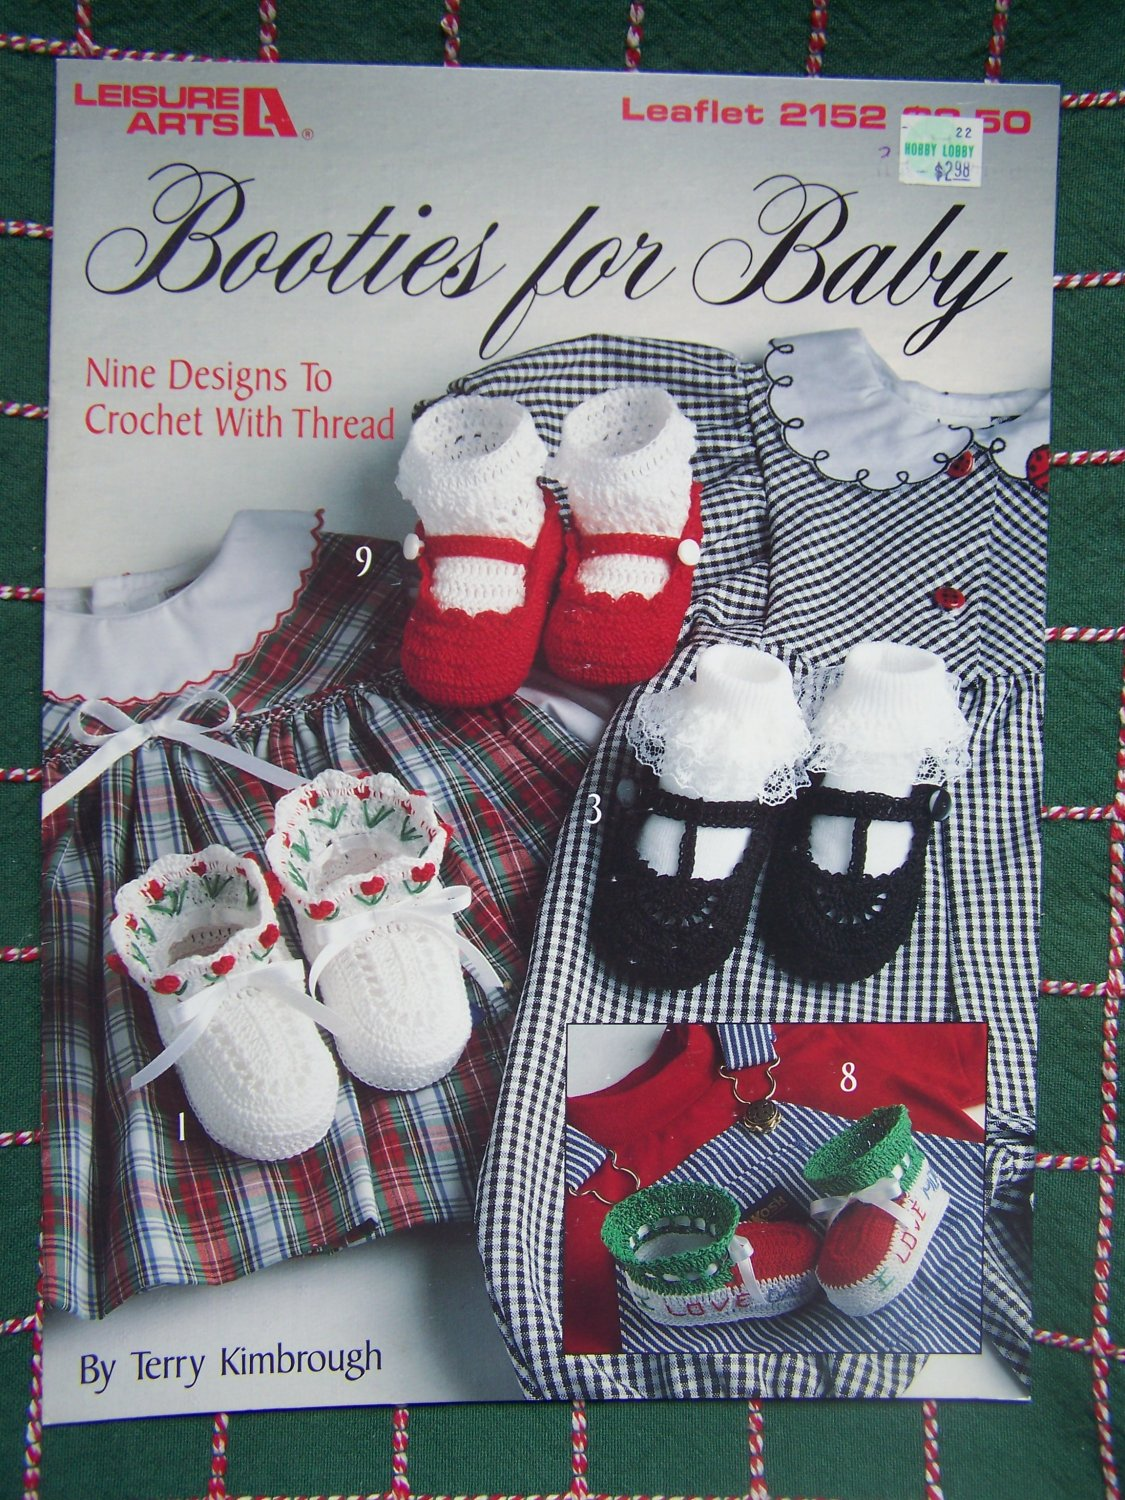 9 New Booties For Baby Thread Crochet Patterns 2152